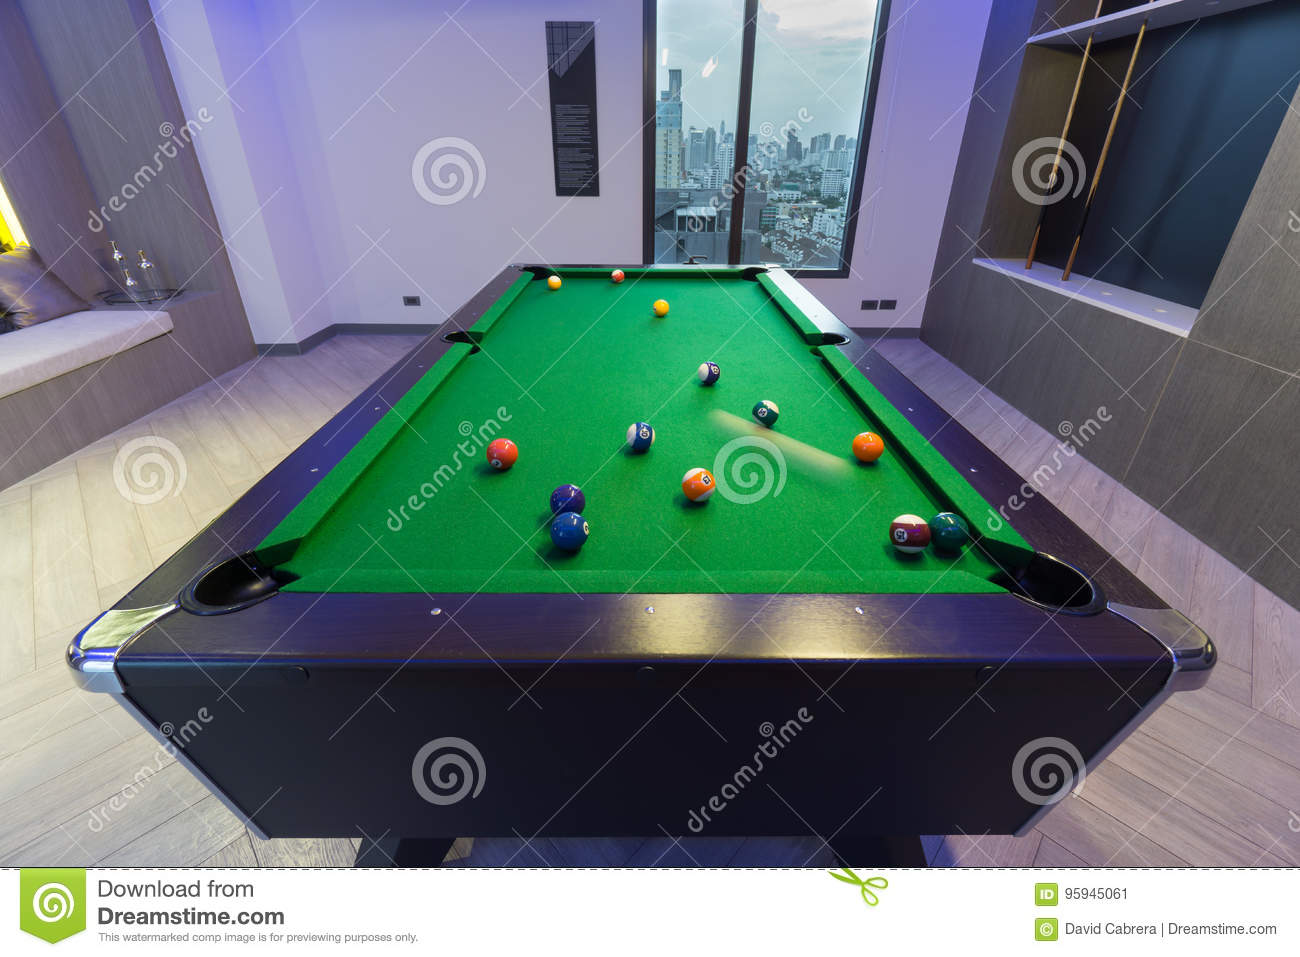 Motion Snooker Pool Billiards green table with complete set of balls in a middle of a game in a modern games room